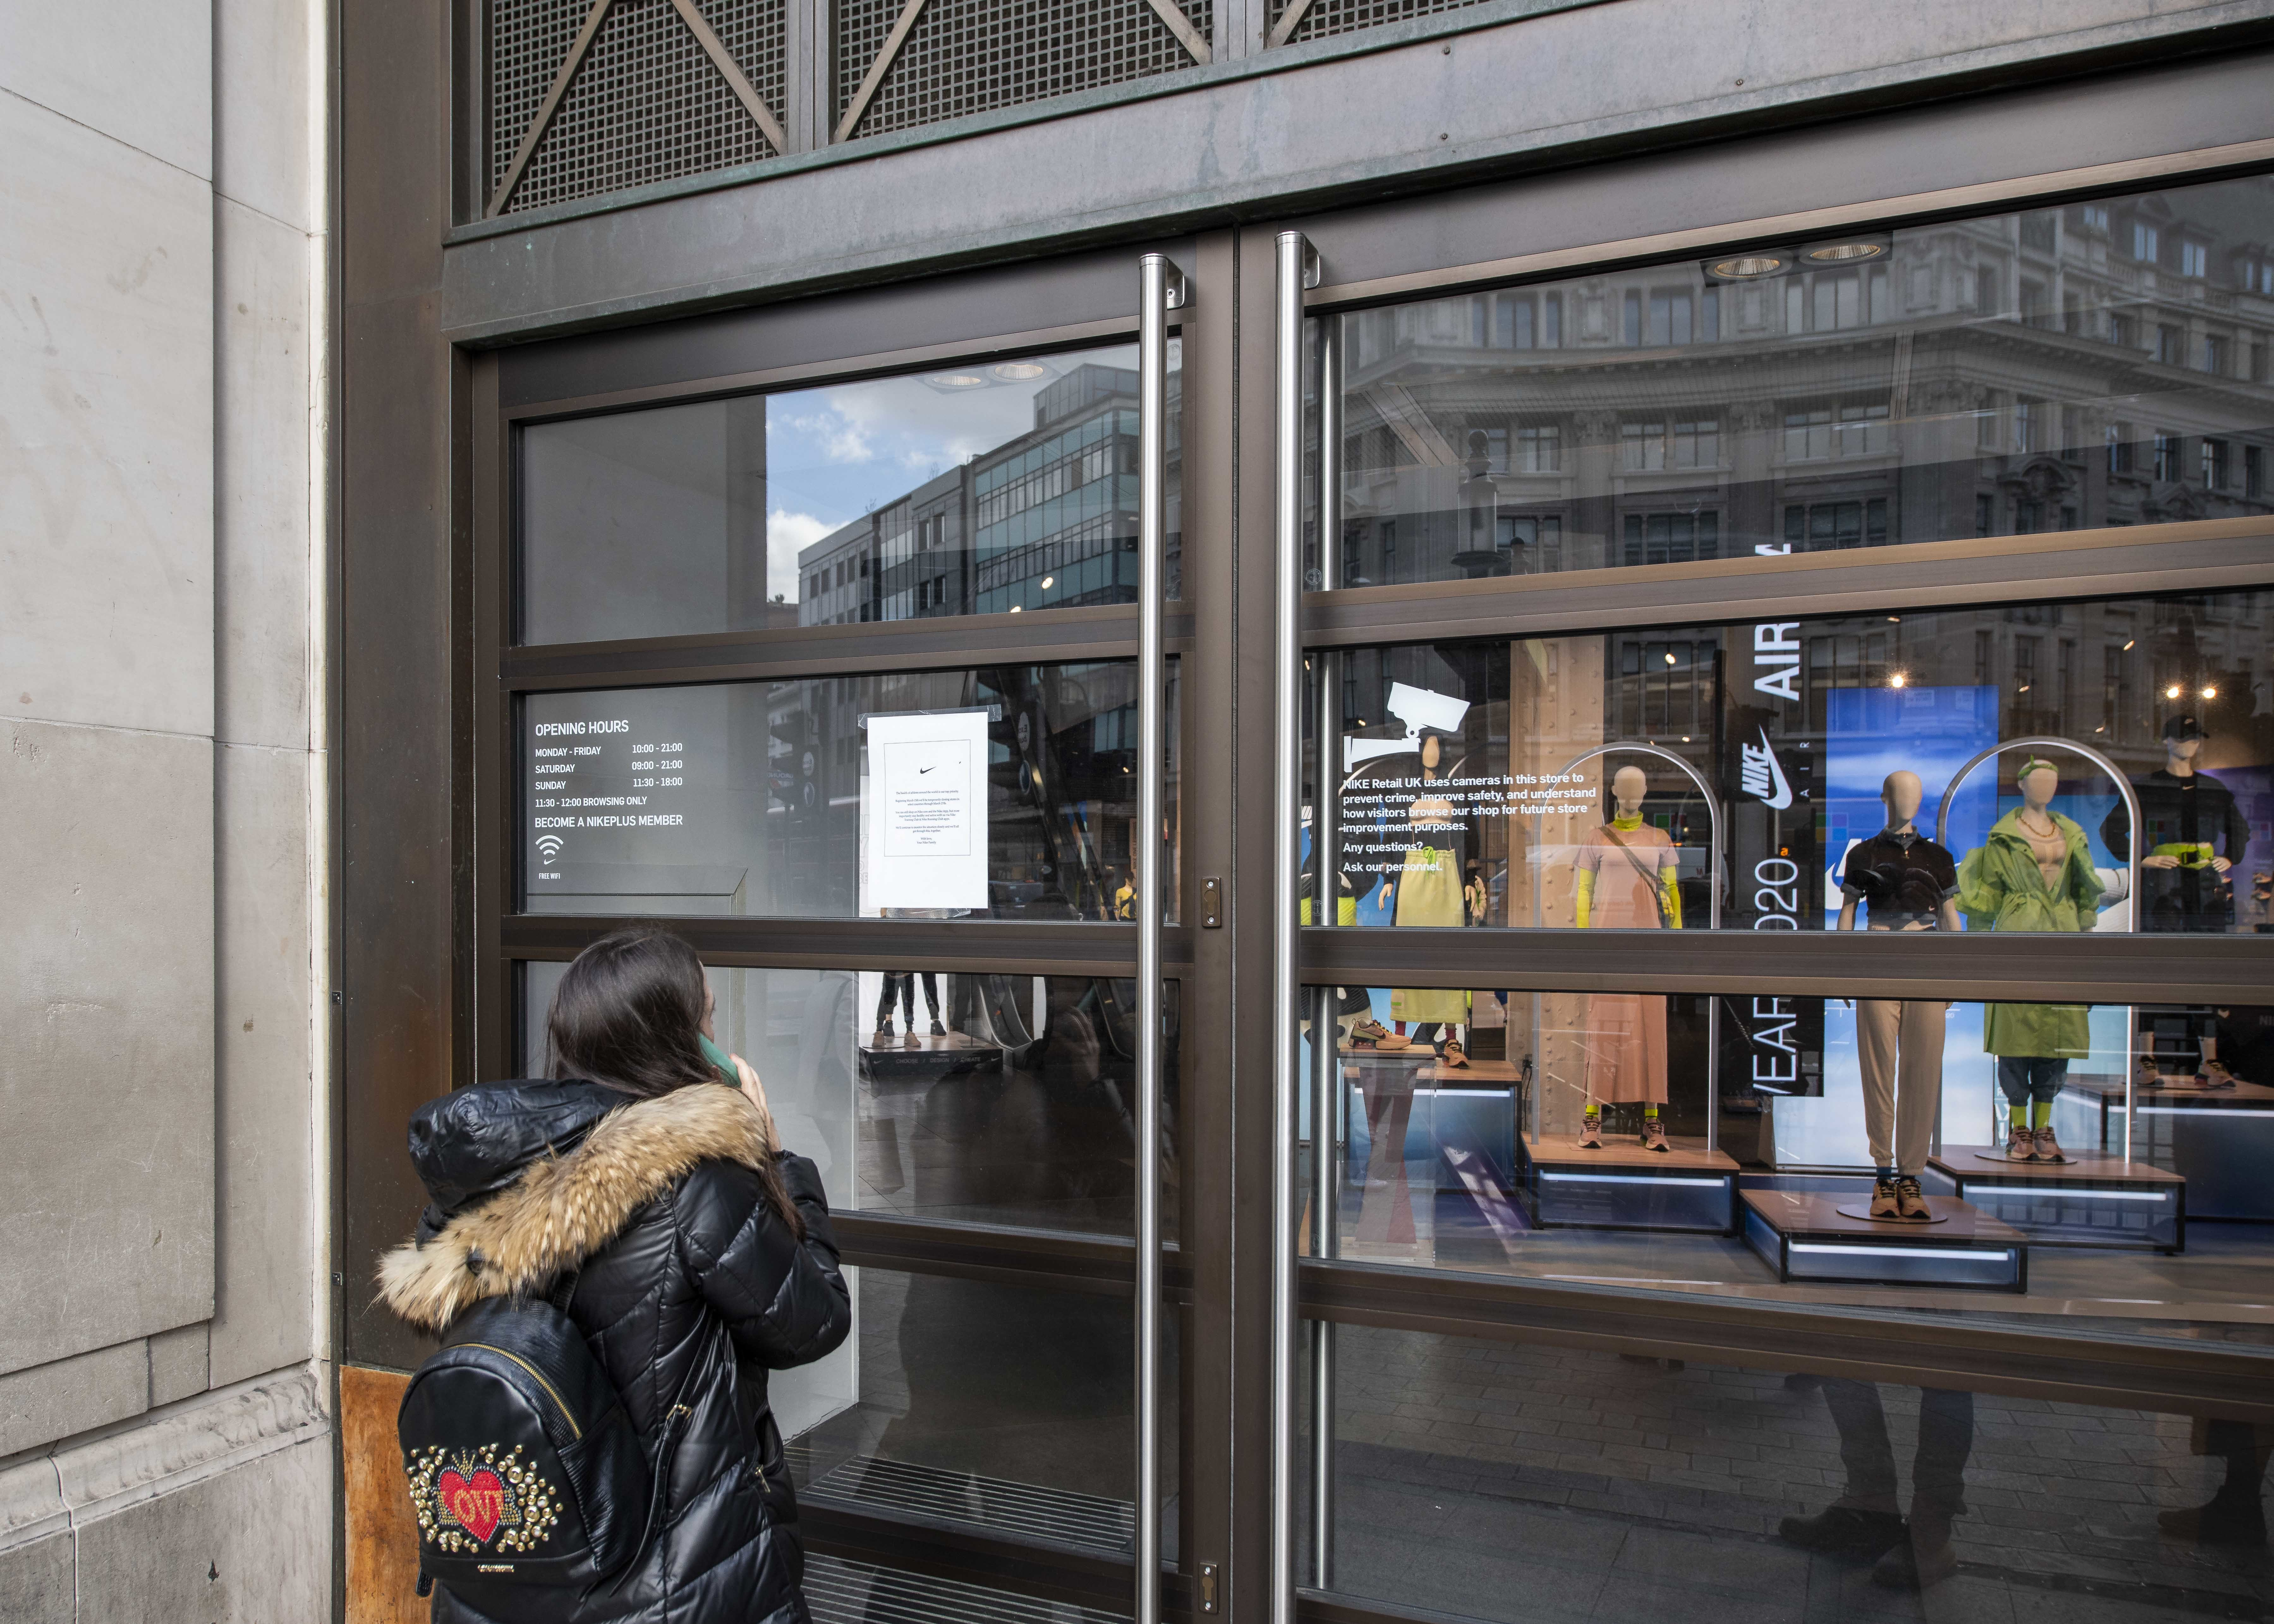 A shopper reads a closure sign on the doors of Niketown in Oxford Circus which closed due to the Coronavirus, Oxford Road, London.  Picture date: Monday 16th March 2020.  Photo credit should read:  David Jensen/ EMPICS Entertainment